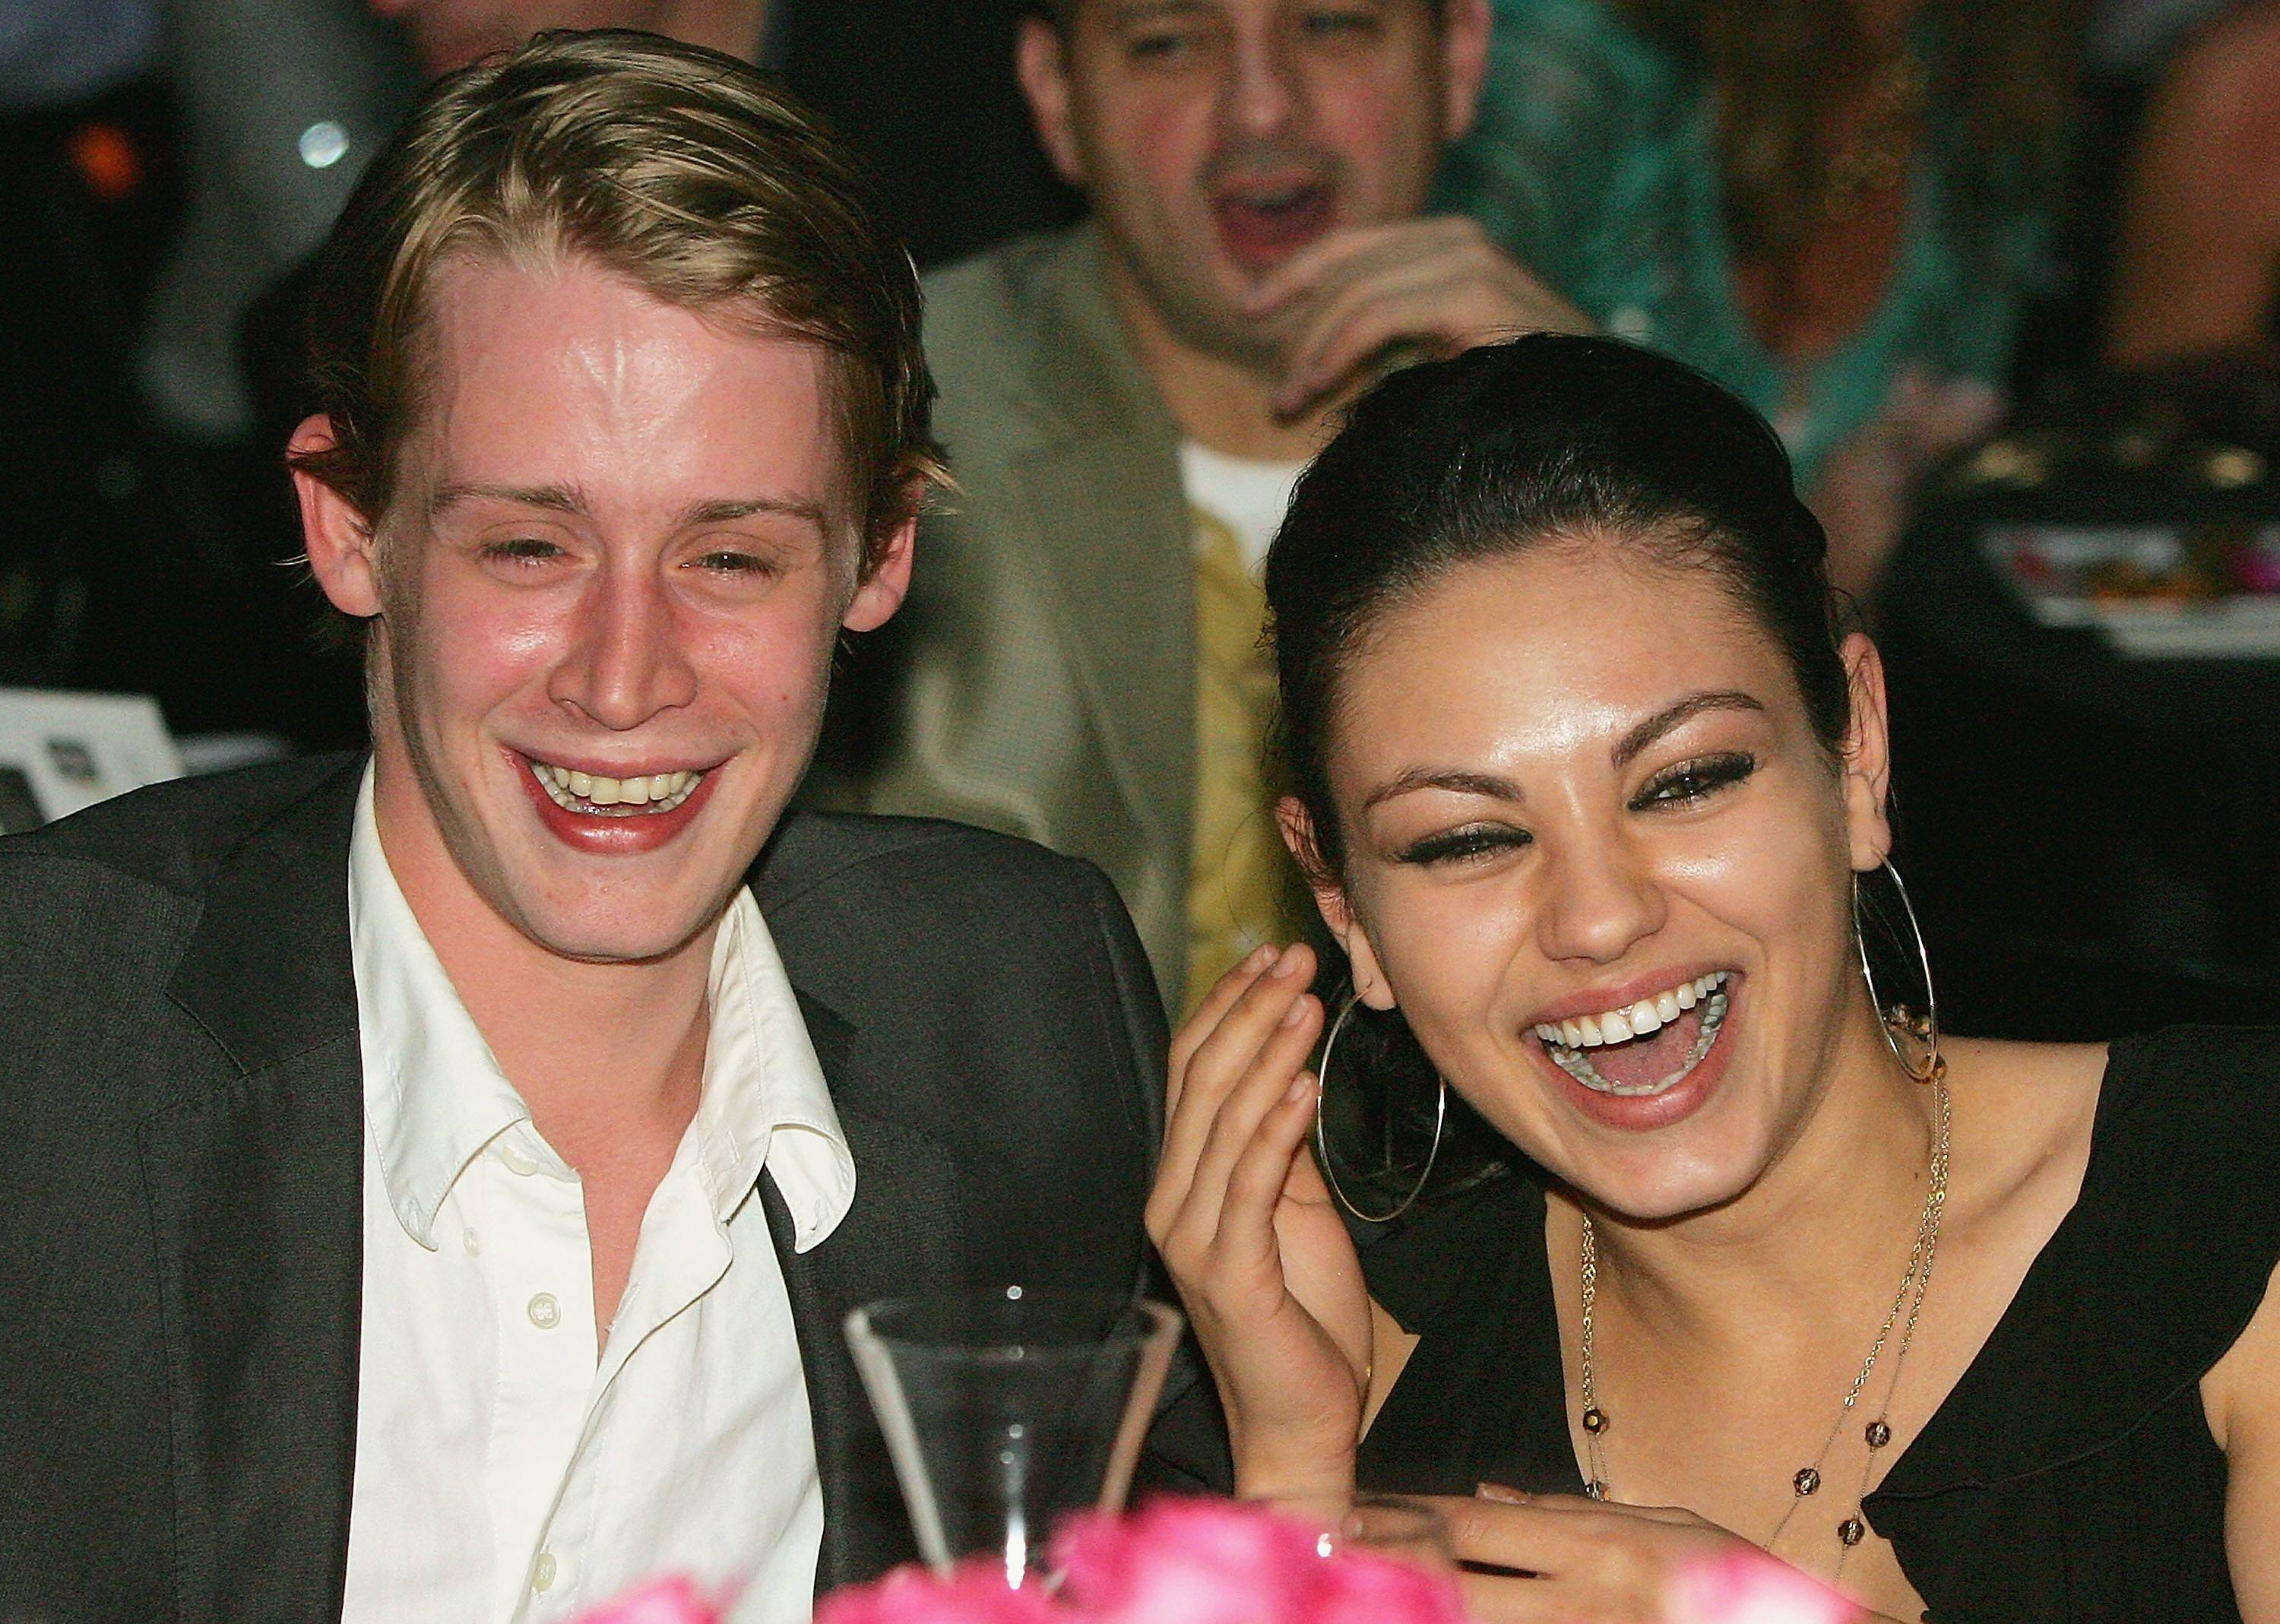 Macaulay Culkin and Mila Kunis laughing together